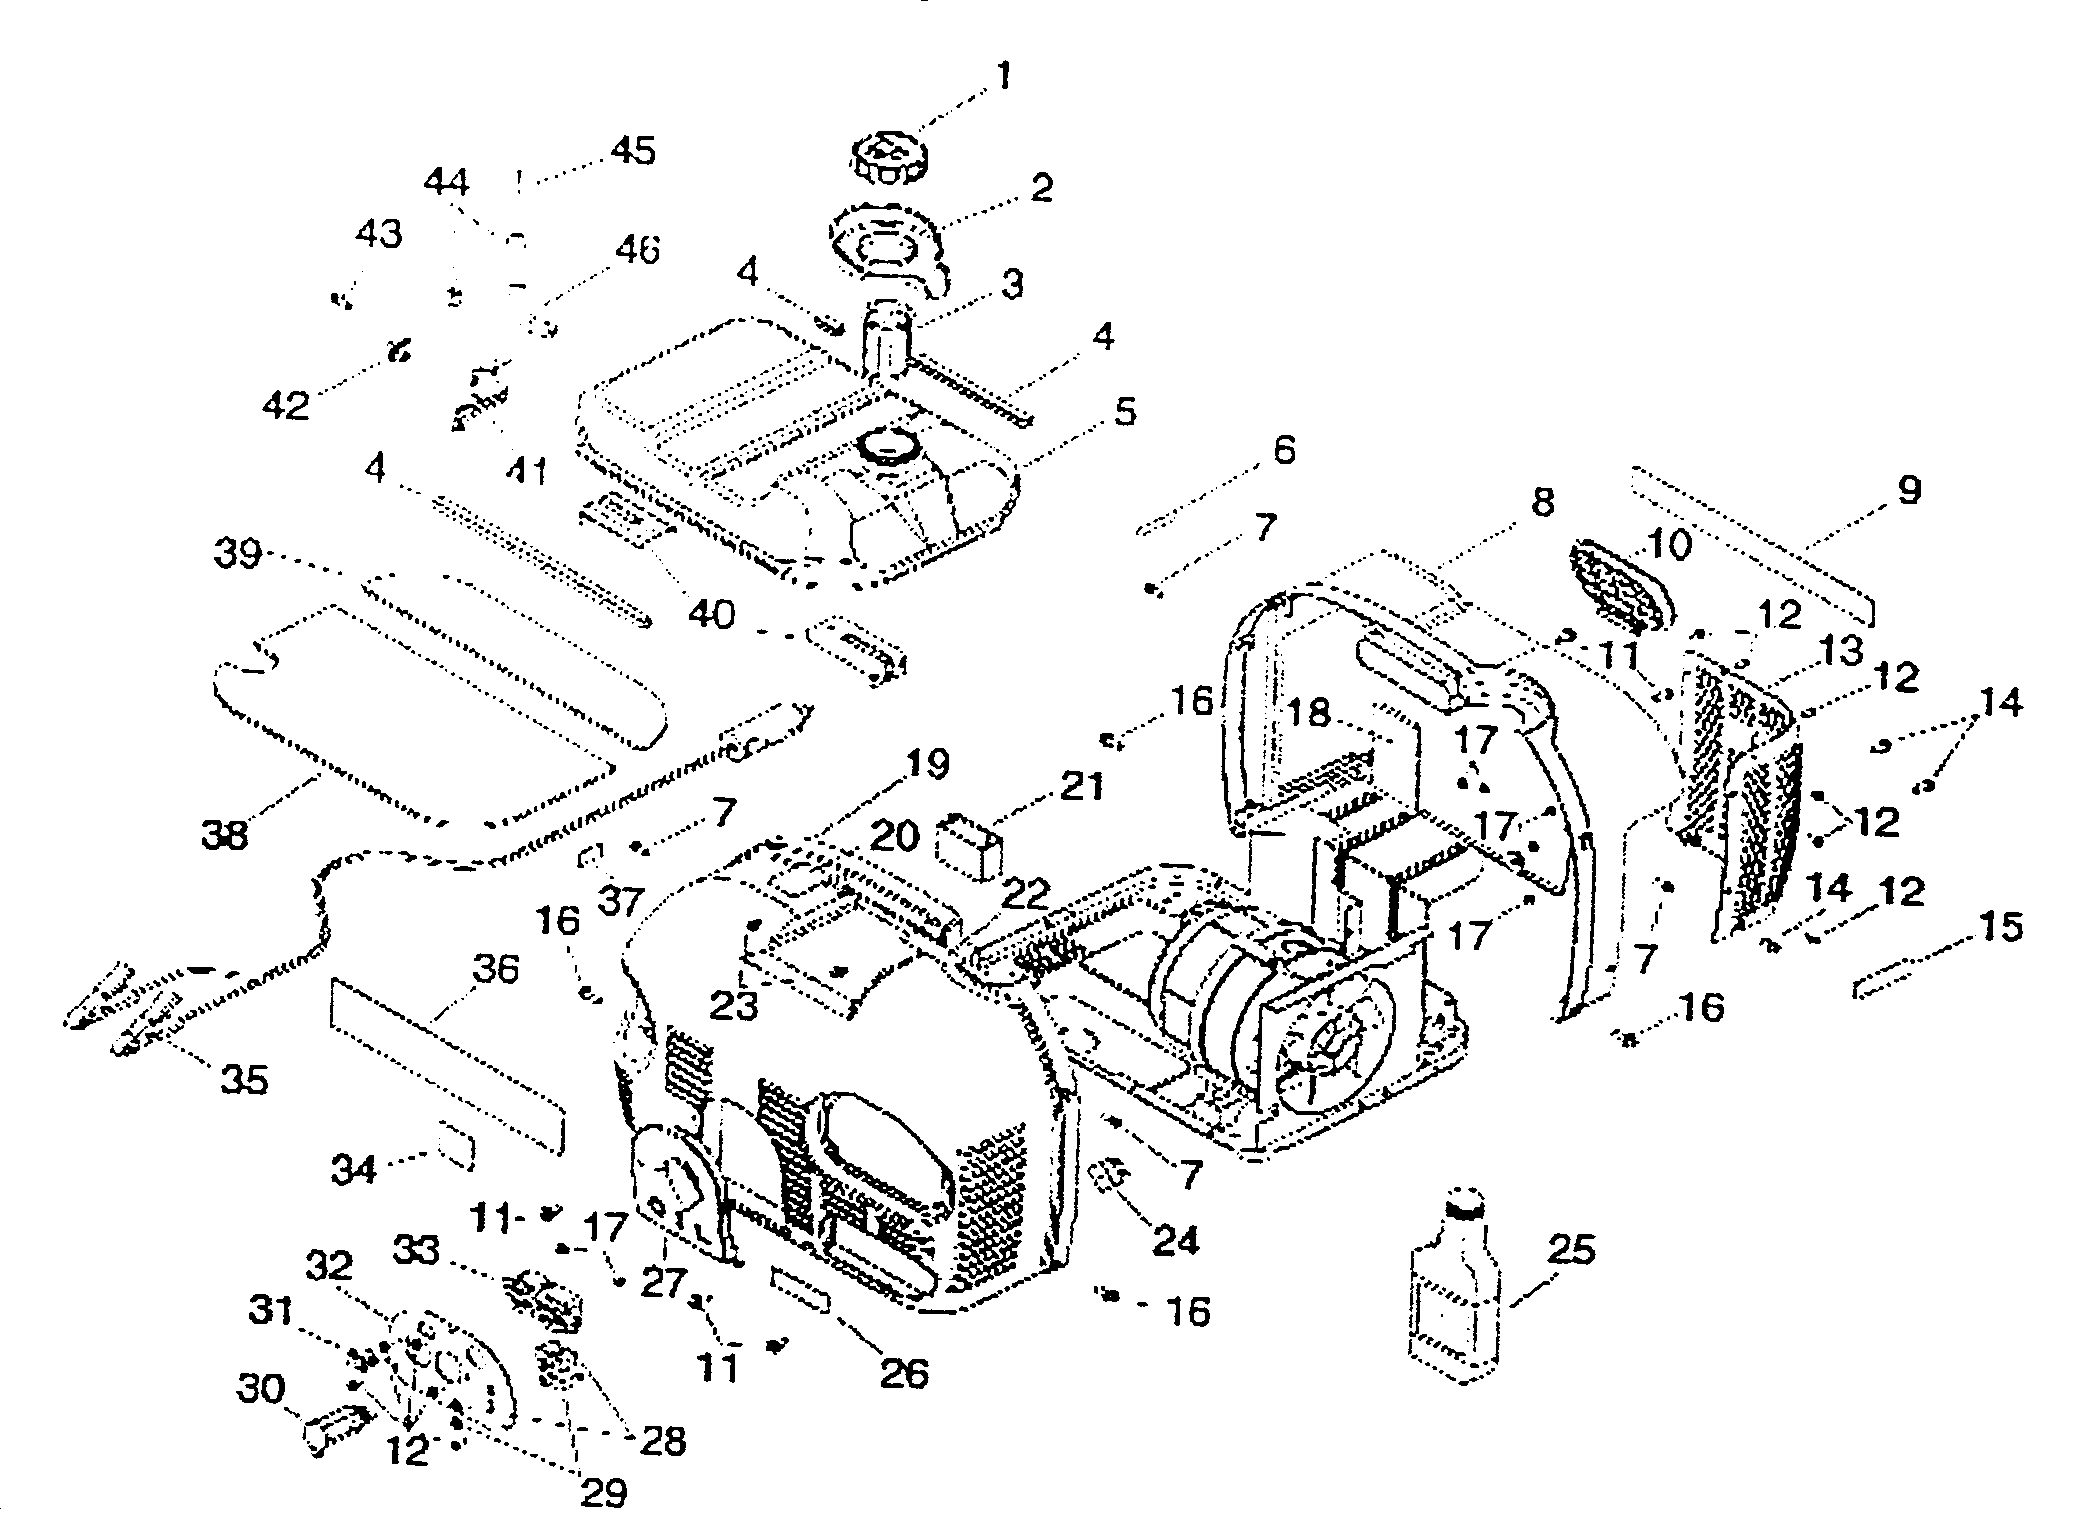 ENCLOSURE EXPLODED VIEW Diagram & Parts List for Model